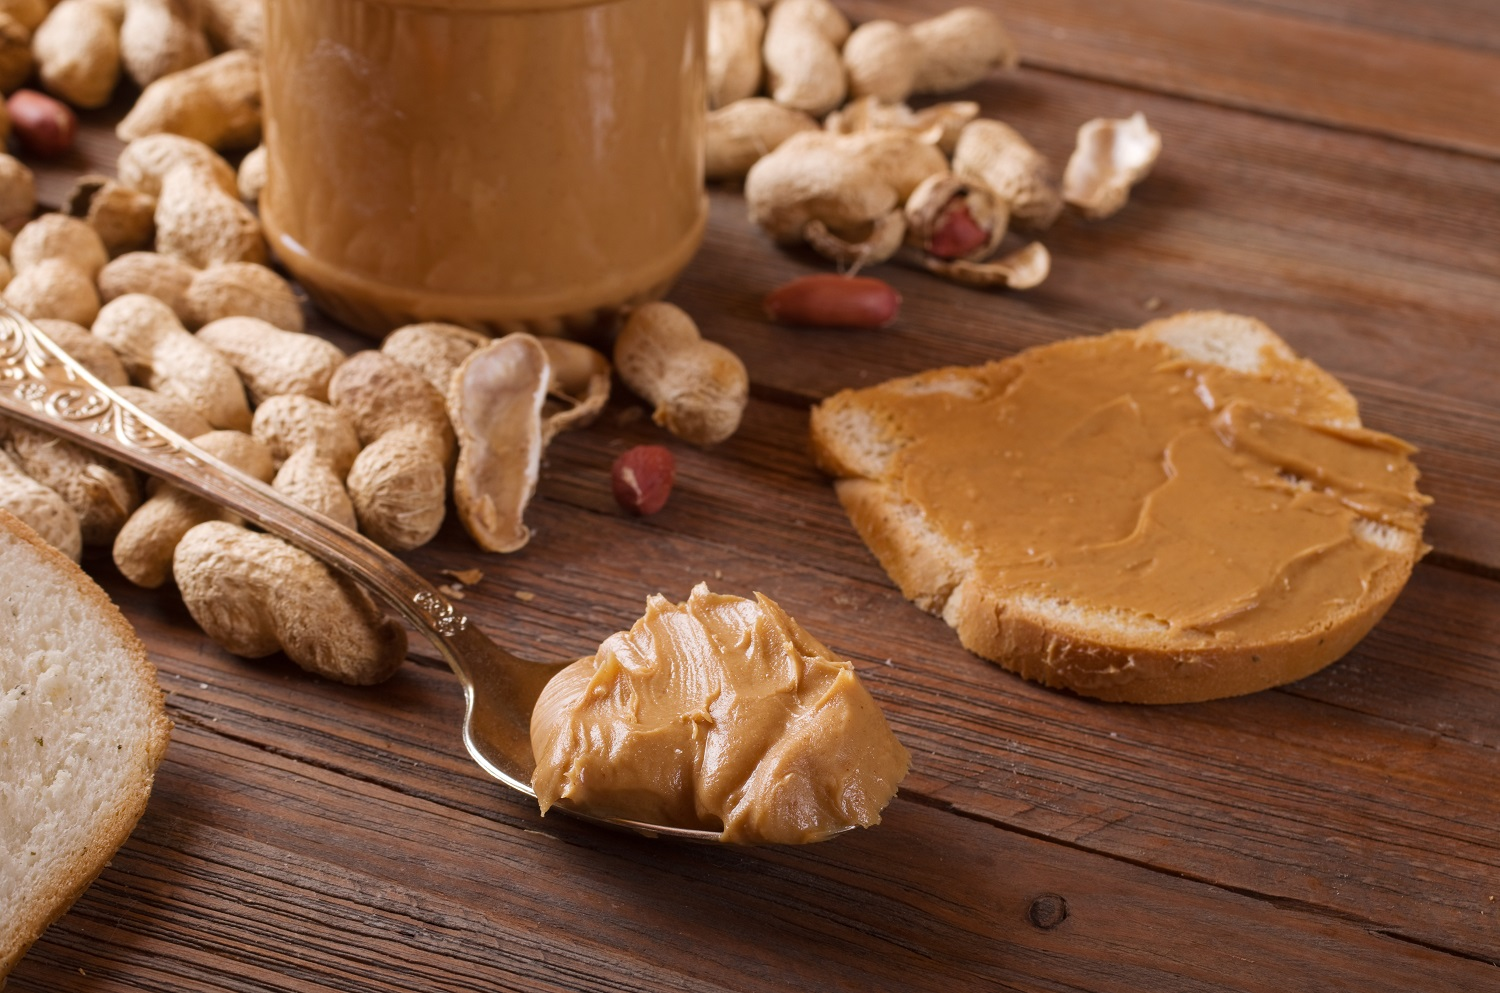 15 interesting ways you never thought to use peanut butter